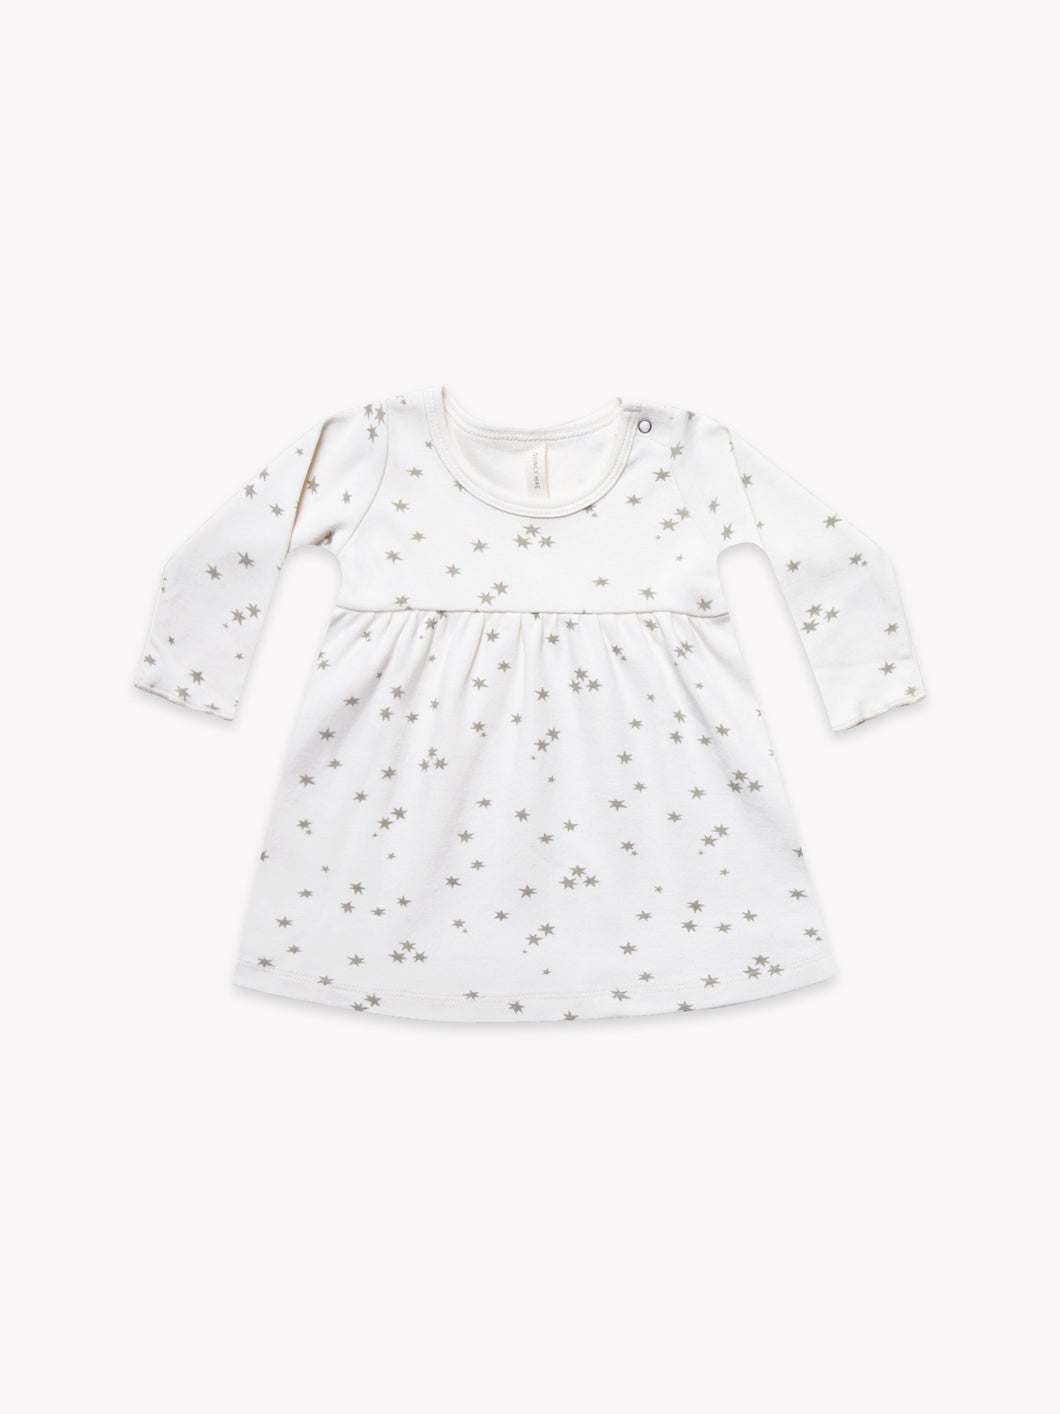 Quincy Mae - Baby Dress - Ivory